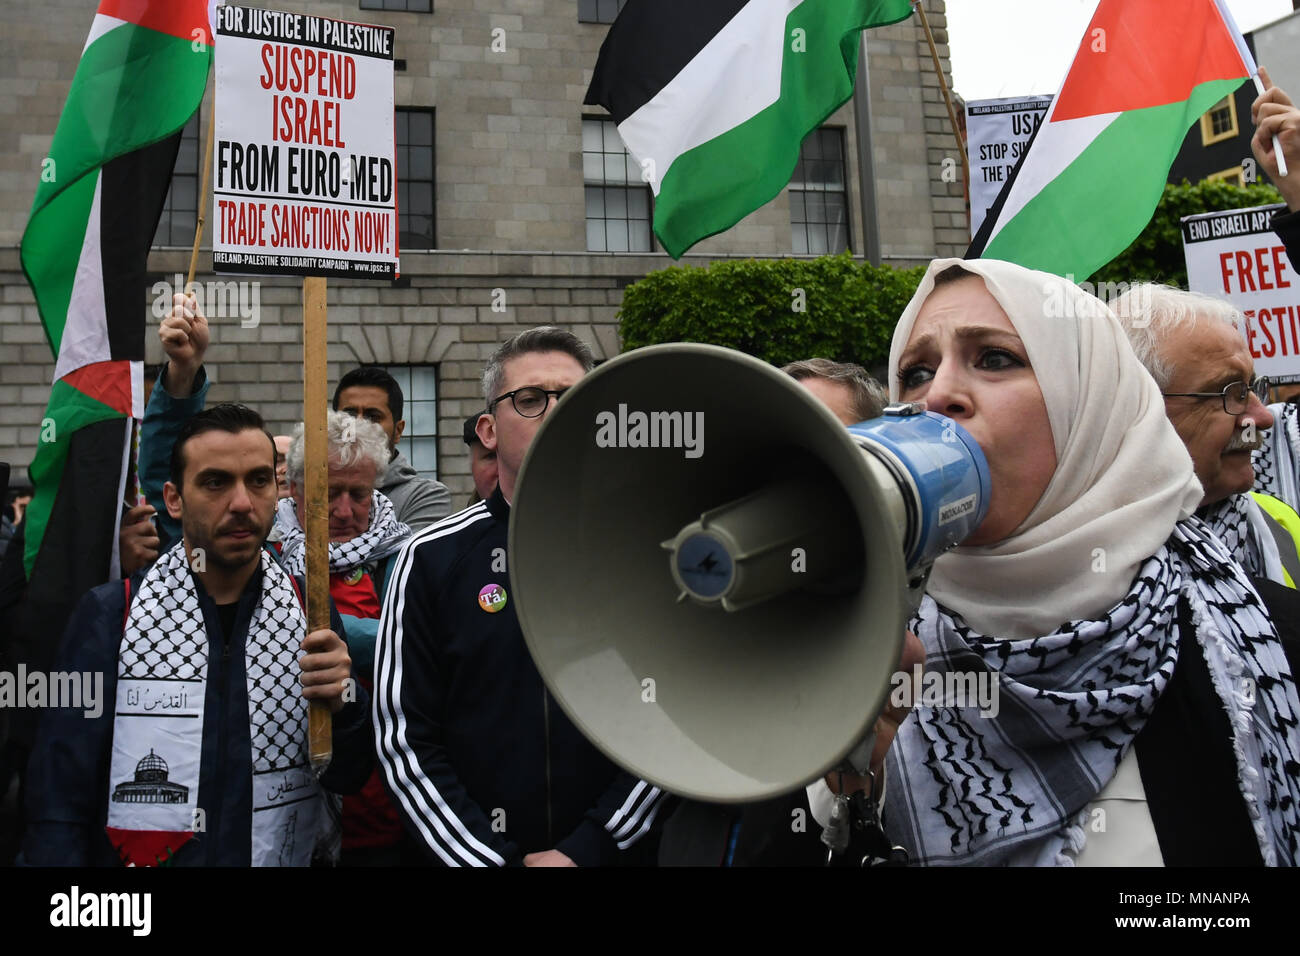 Dublin, Ireland. 15/5/2018. Over hundred protesters took part in The Ireland-Palestine Solidarity Campaign (IPSC) rally in front of Dublin's GPO on O'Connell Street. Photo: ASWphoto Credit: ASWphoto/Alamy Live News - Stock Image